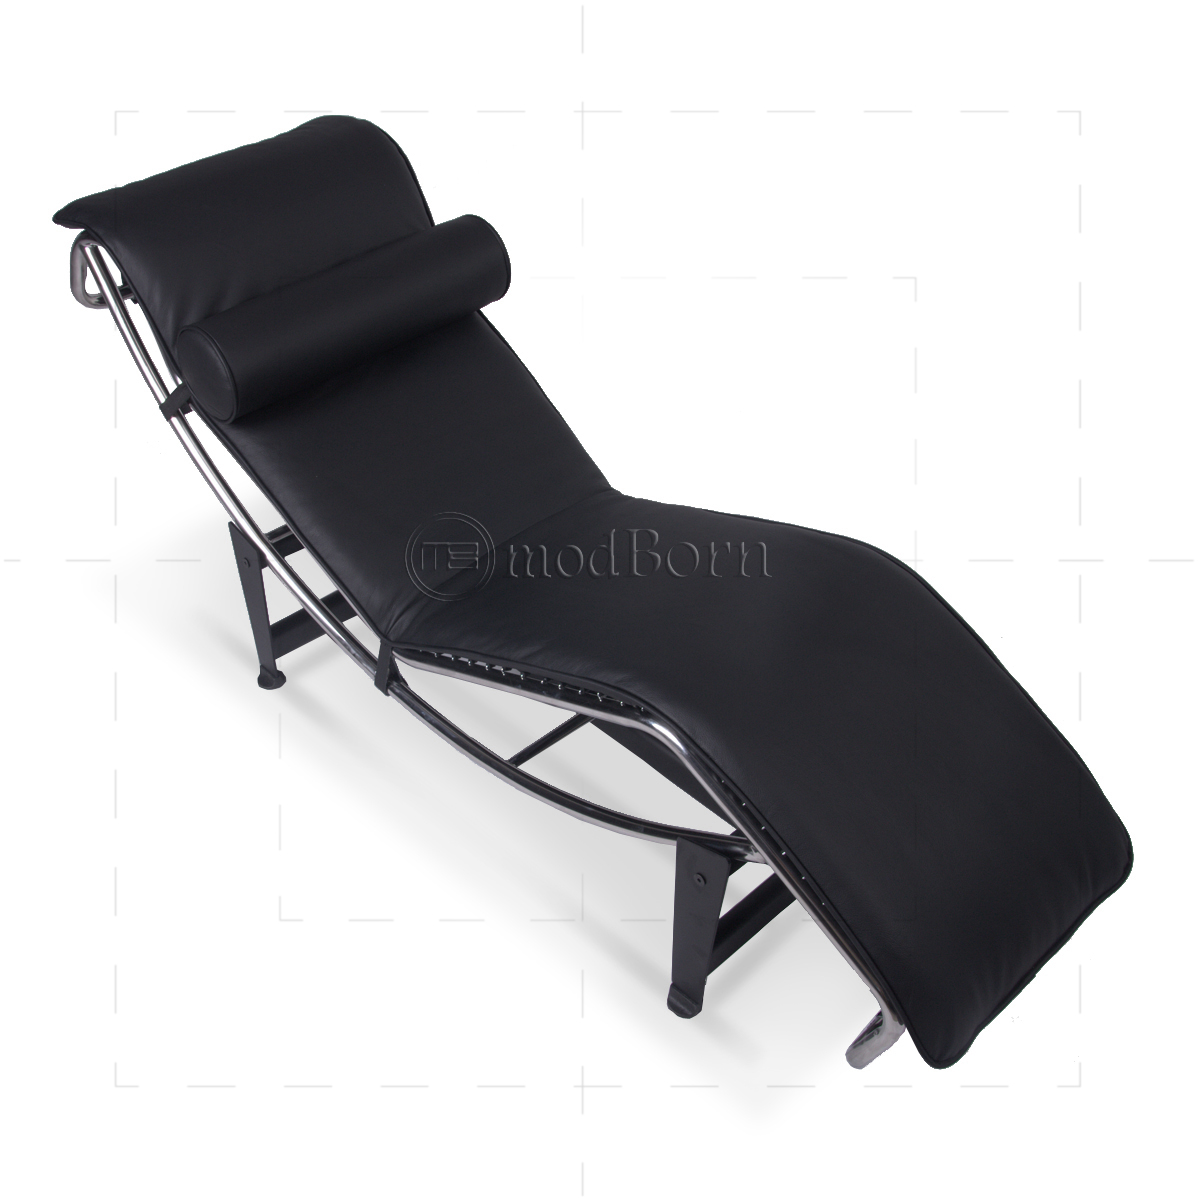 Le corbusier style lc4 chaise longue black leather replica for Le corbusier replica